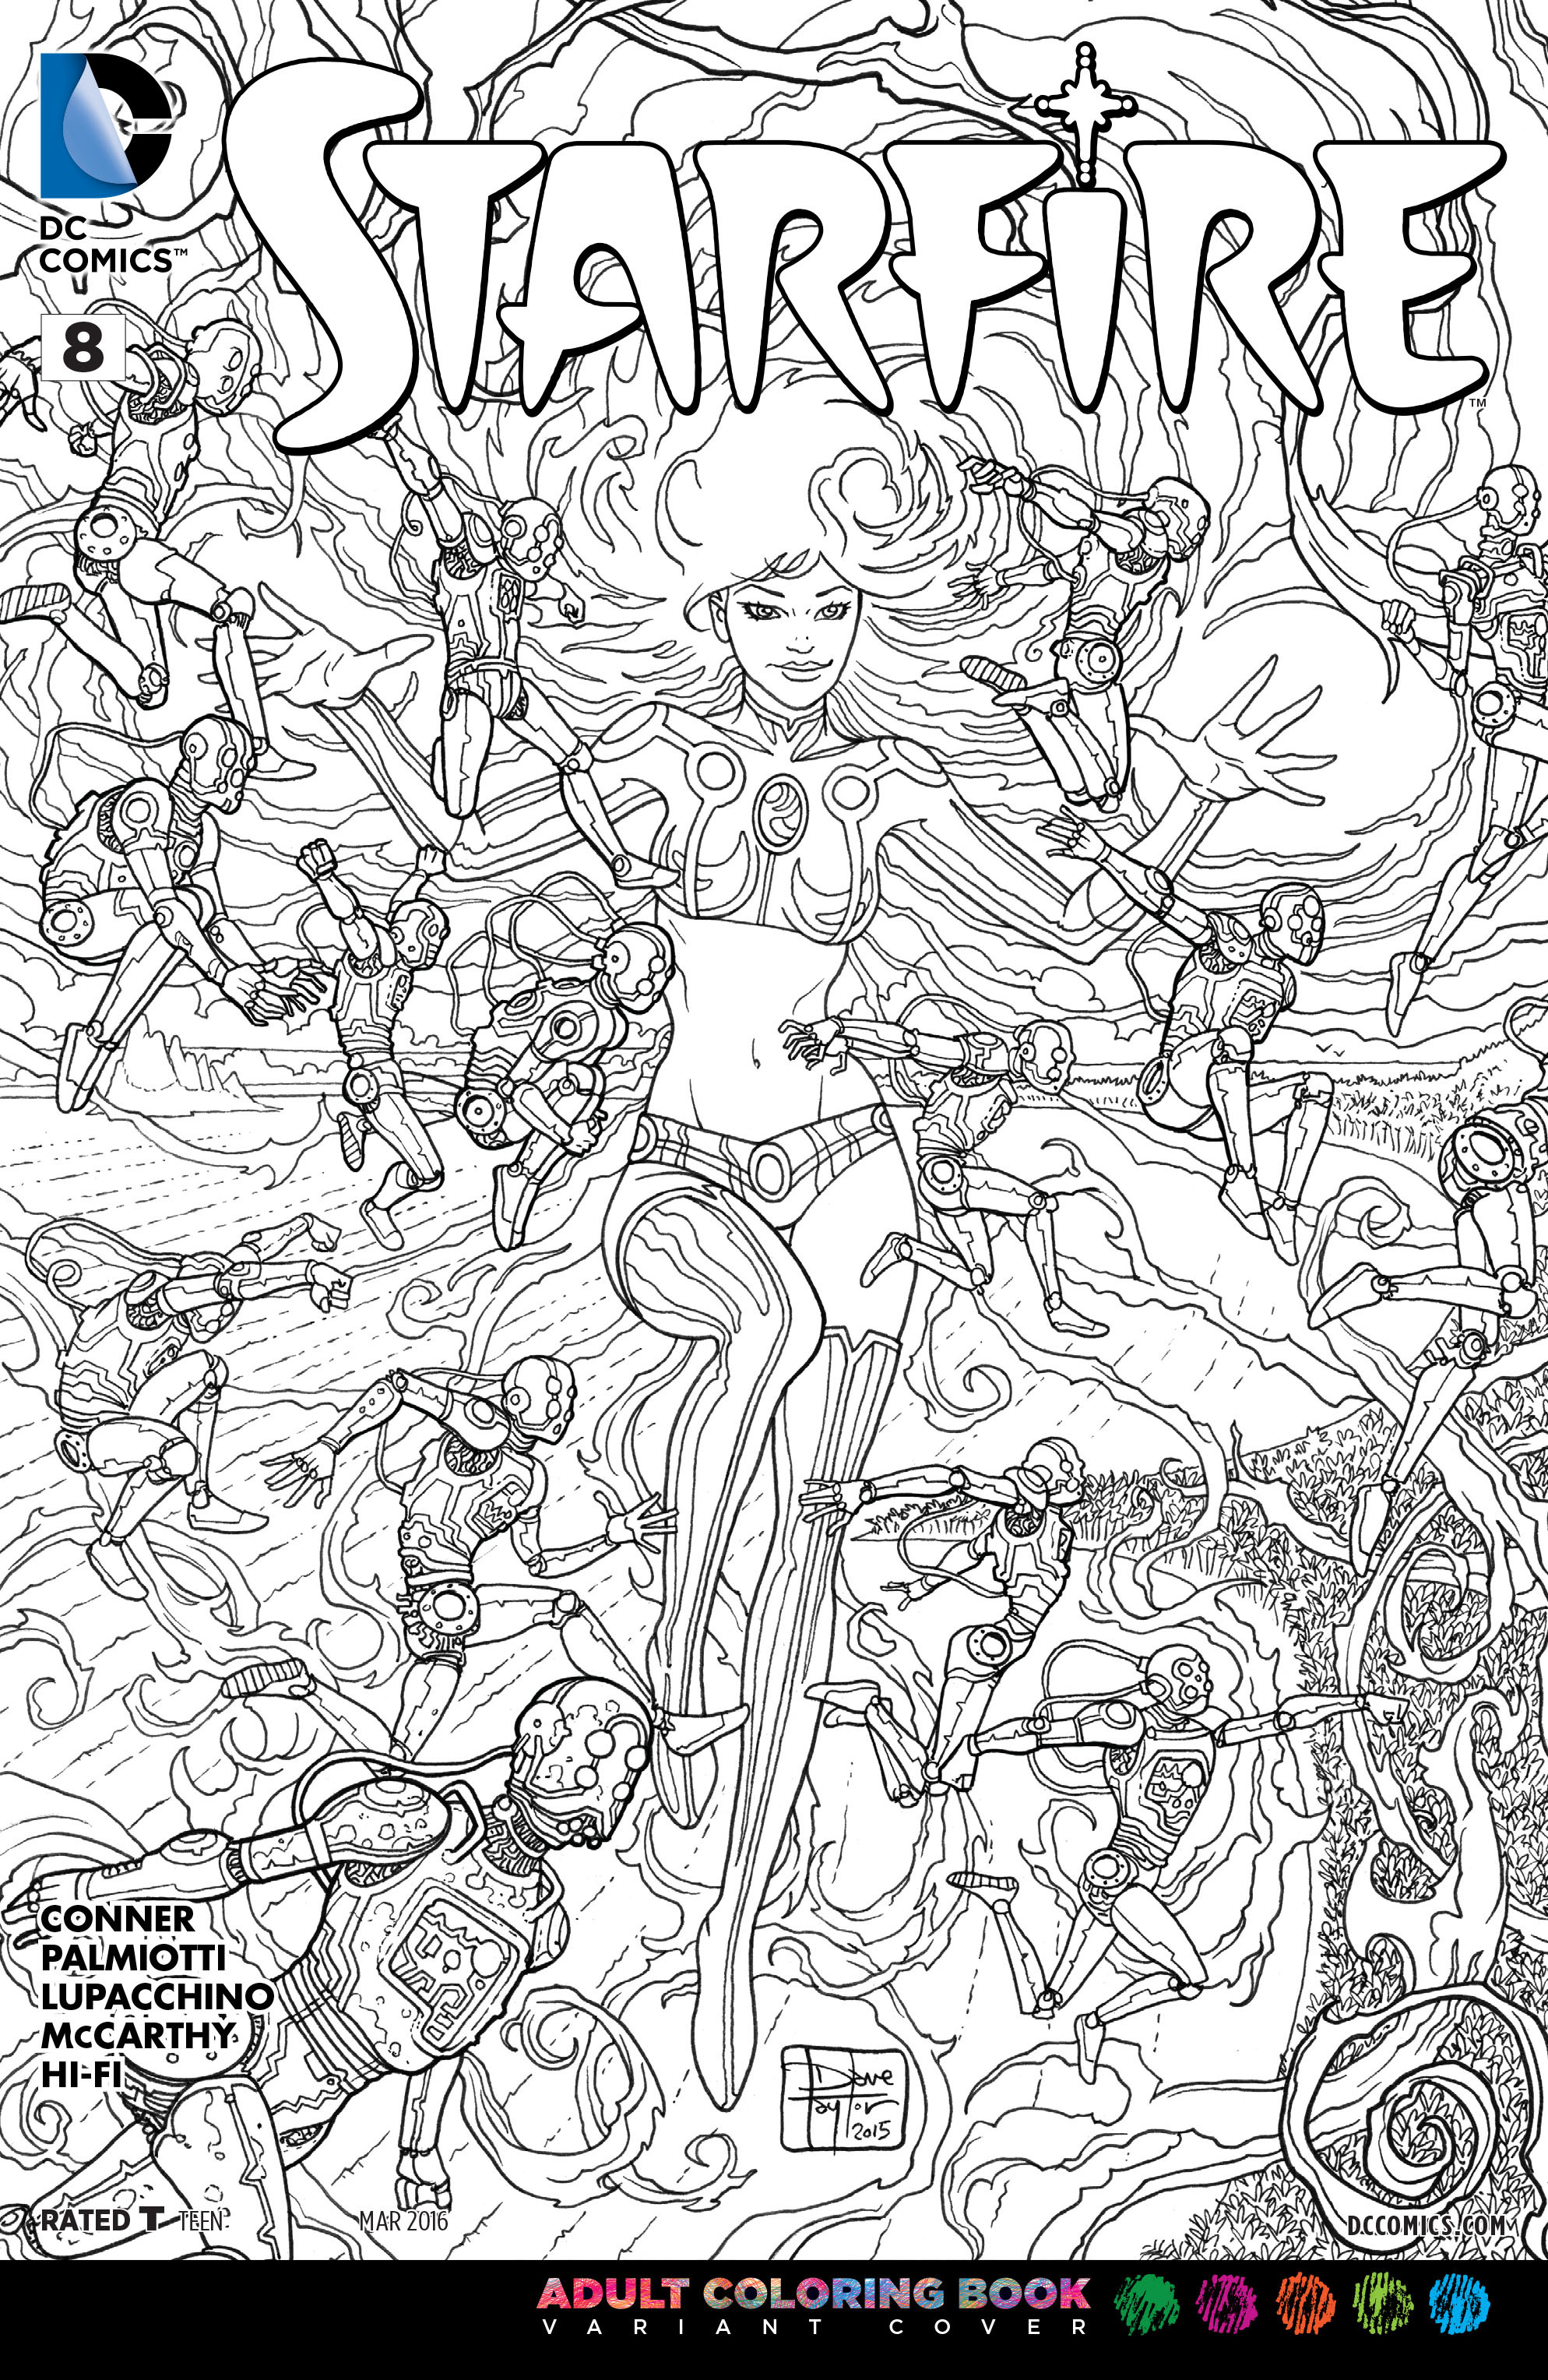 Image Starfire Vol 2 8 Adult Coloring Book Variantjpg DC